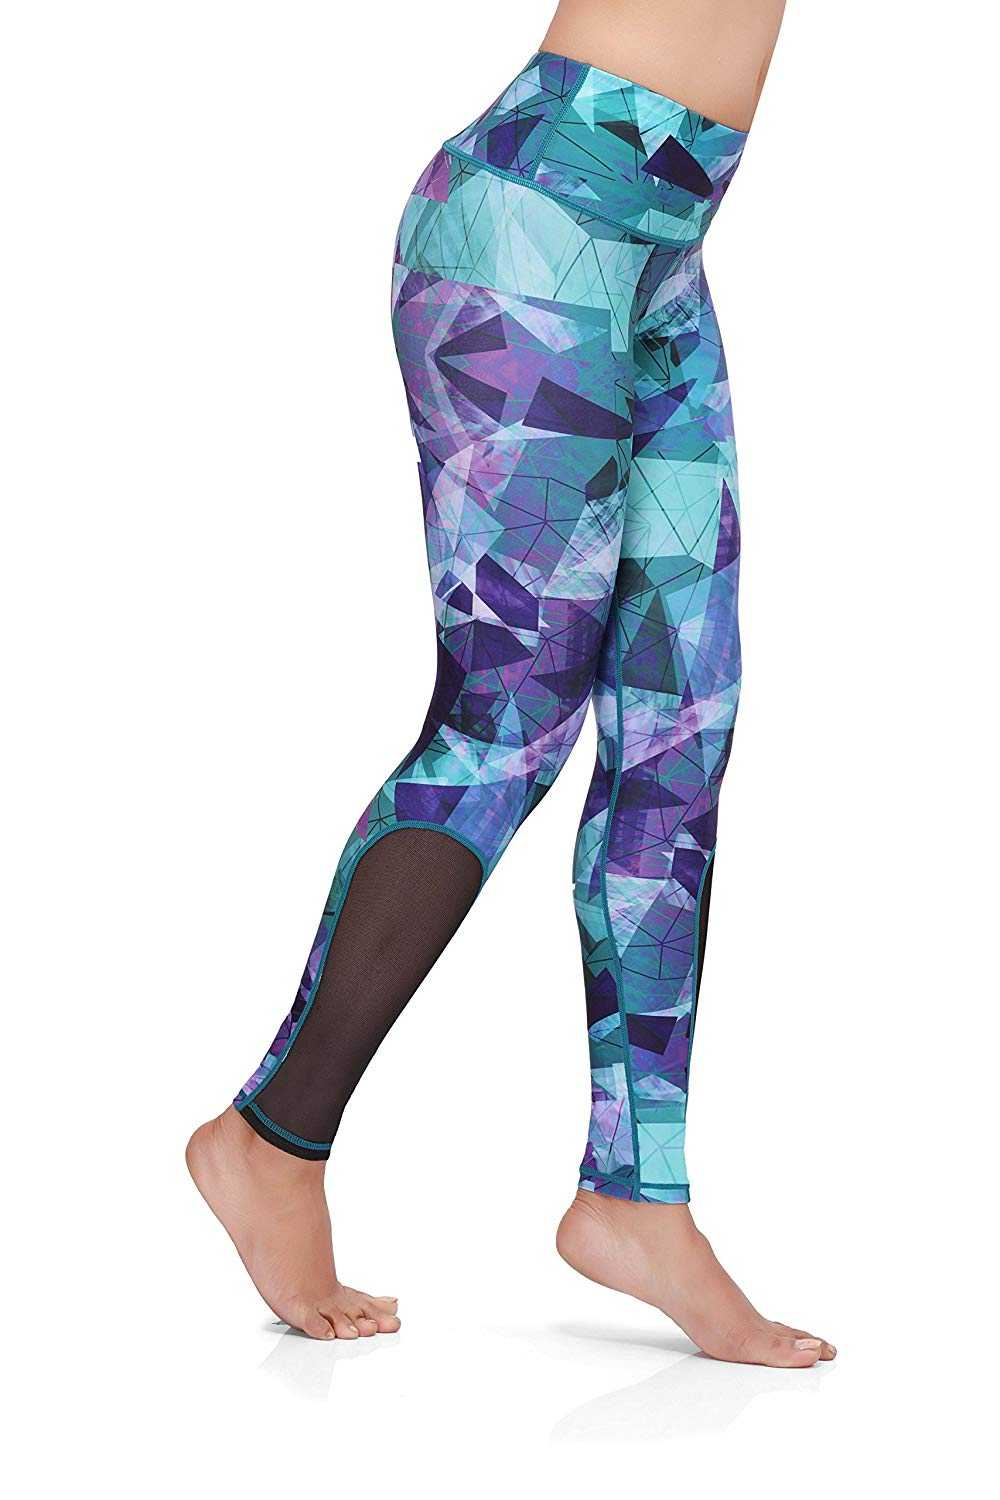 Omtex-Athletica-Activewear-Bottoms-for-Women-Blue-Multicolor2